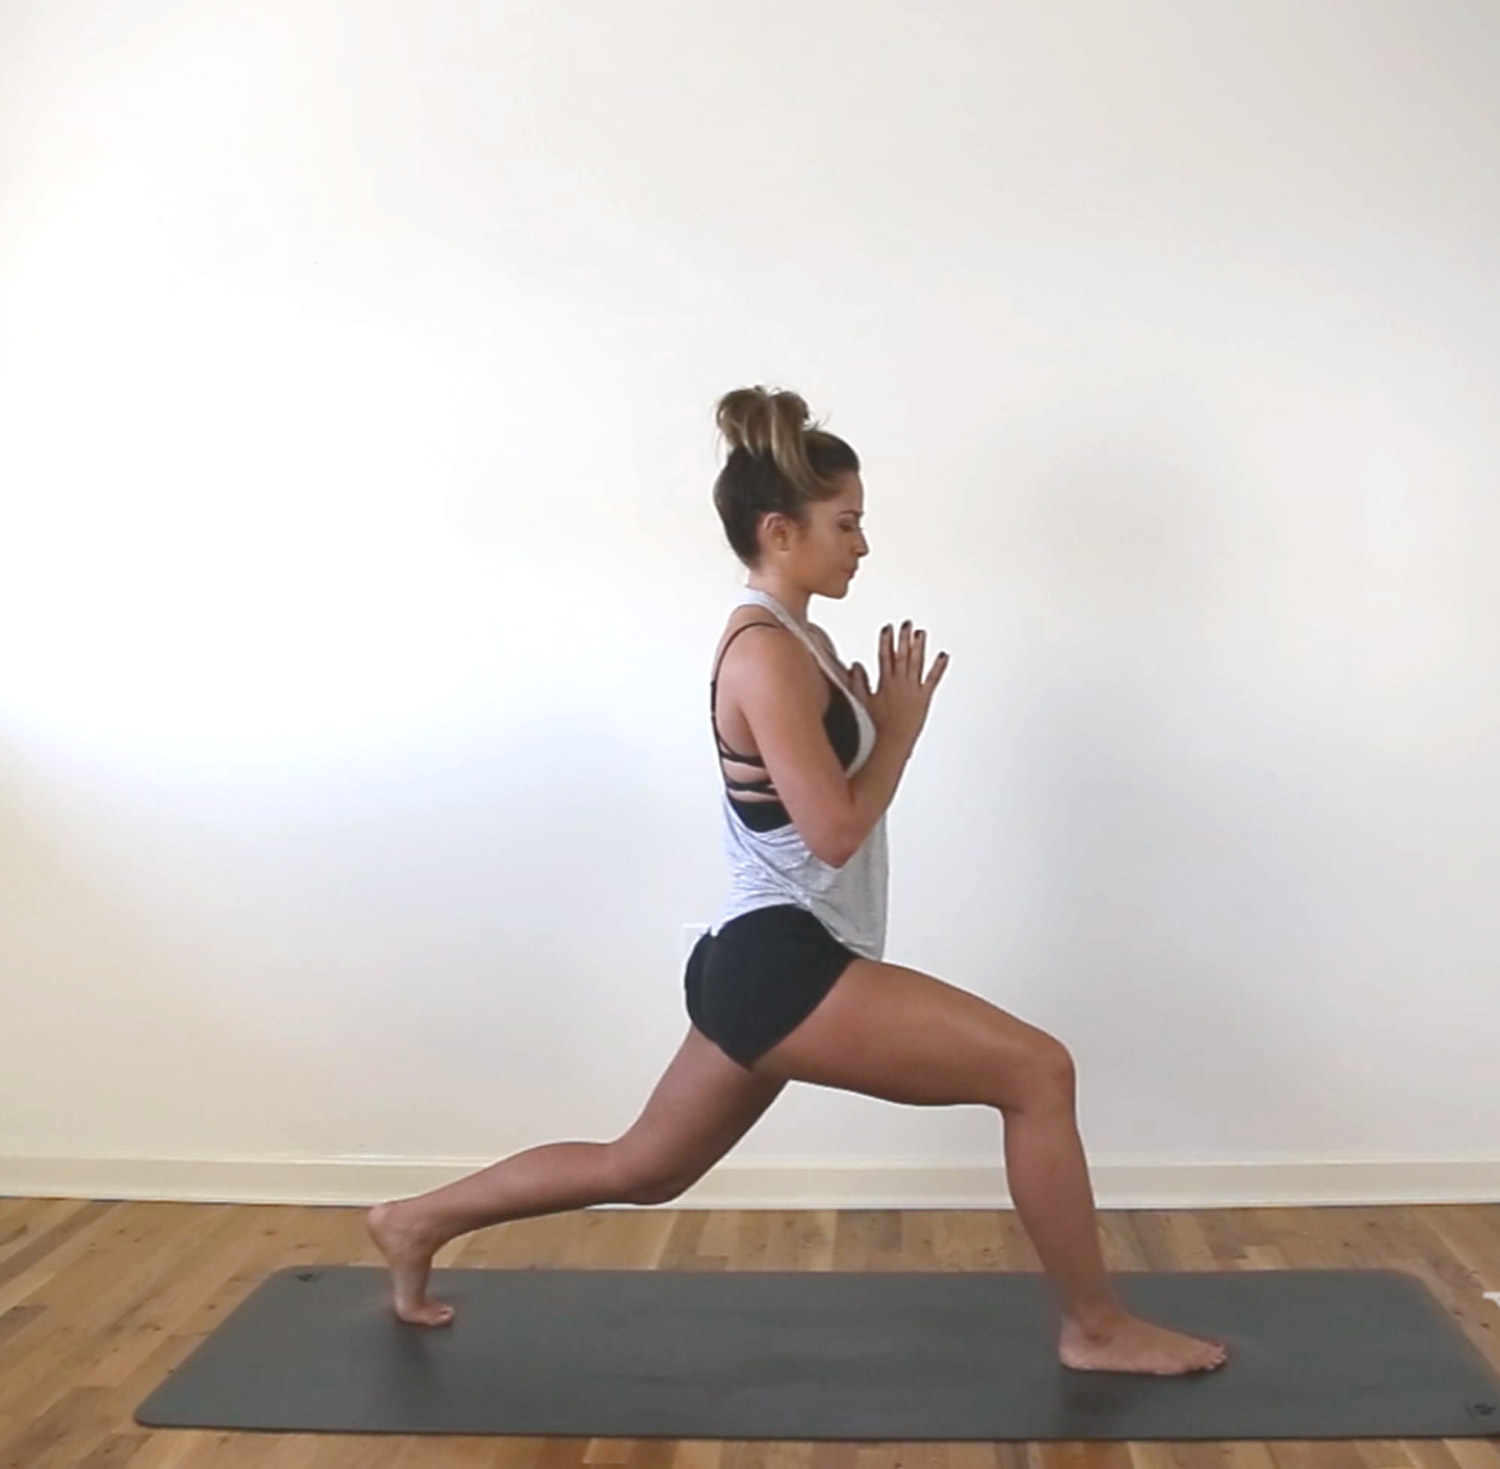 A 20 minute yoga video to develop back body strength through your glutes, hamstrings, and back.